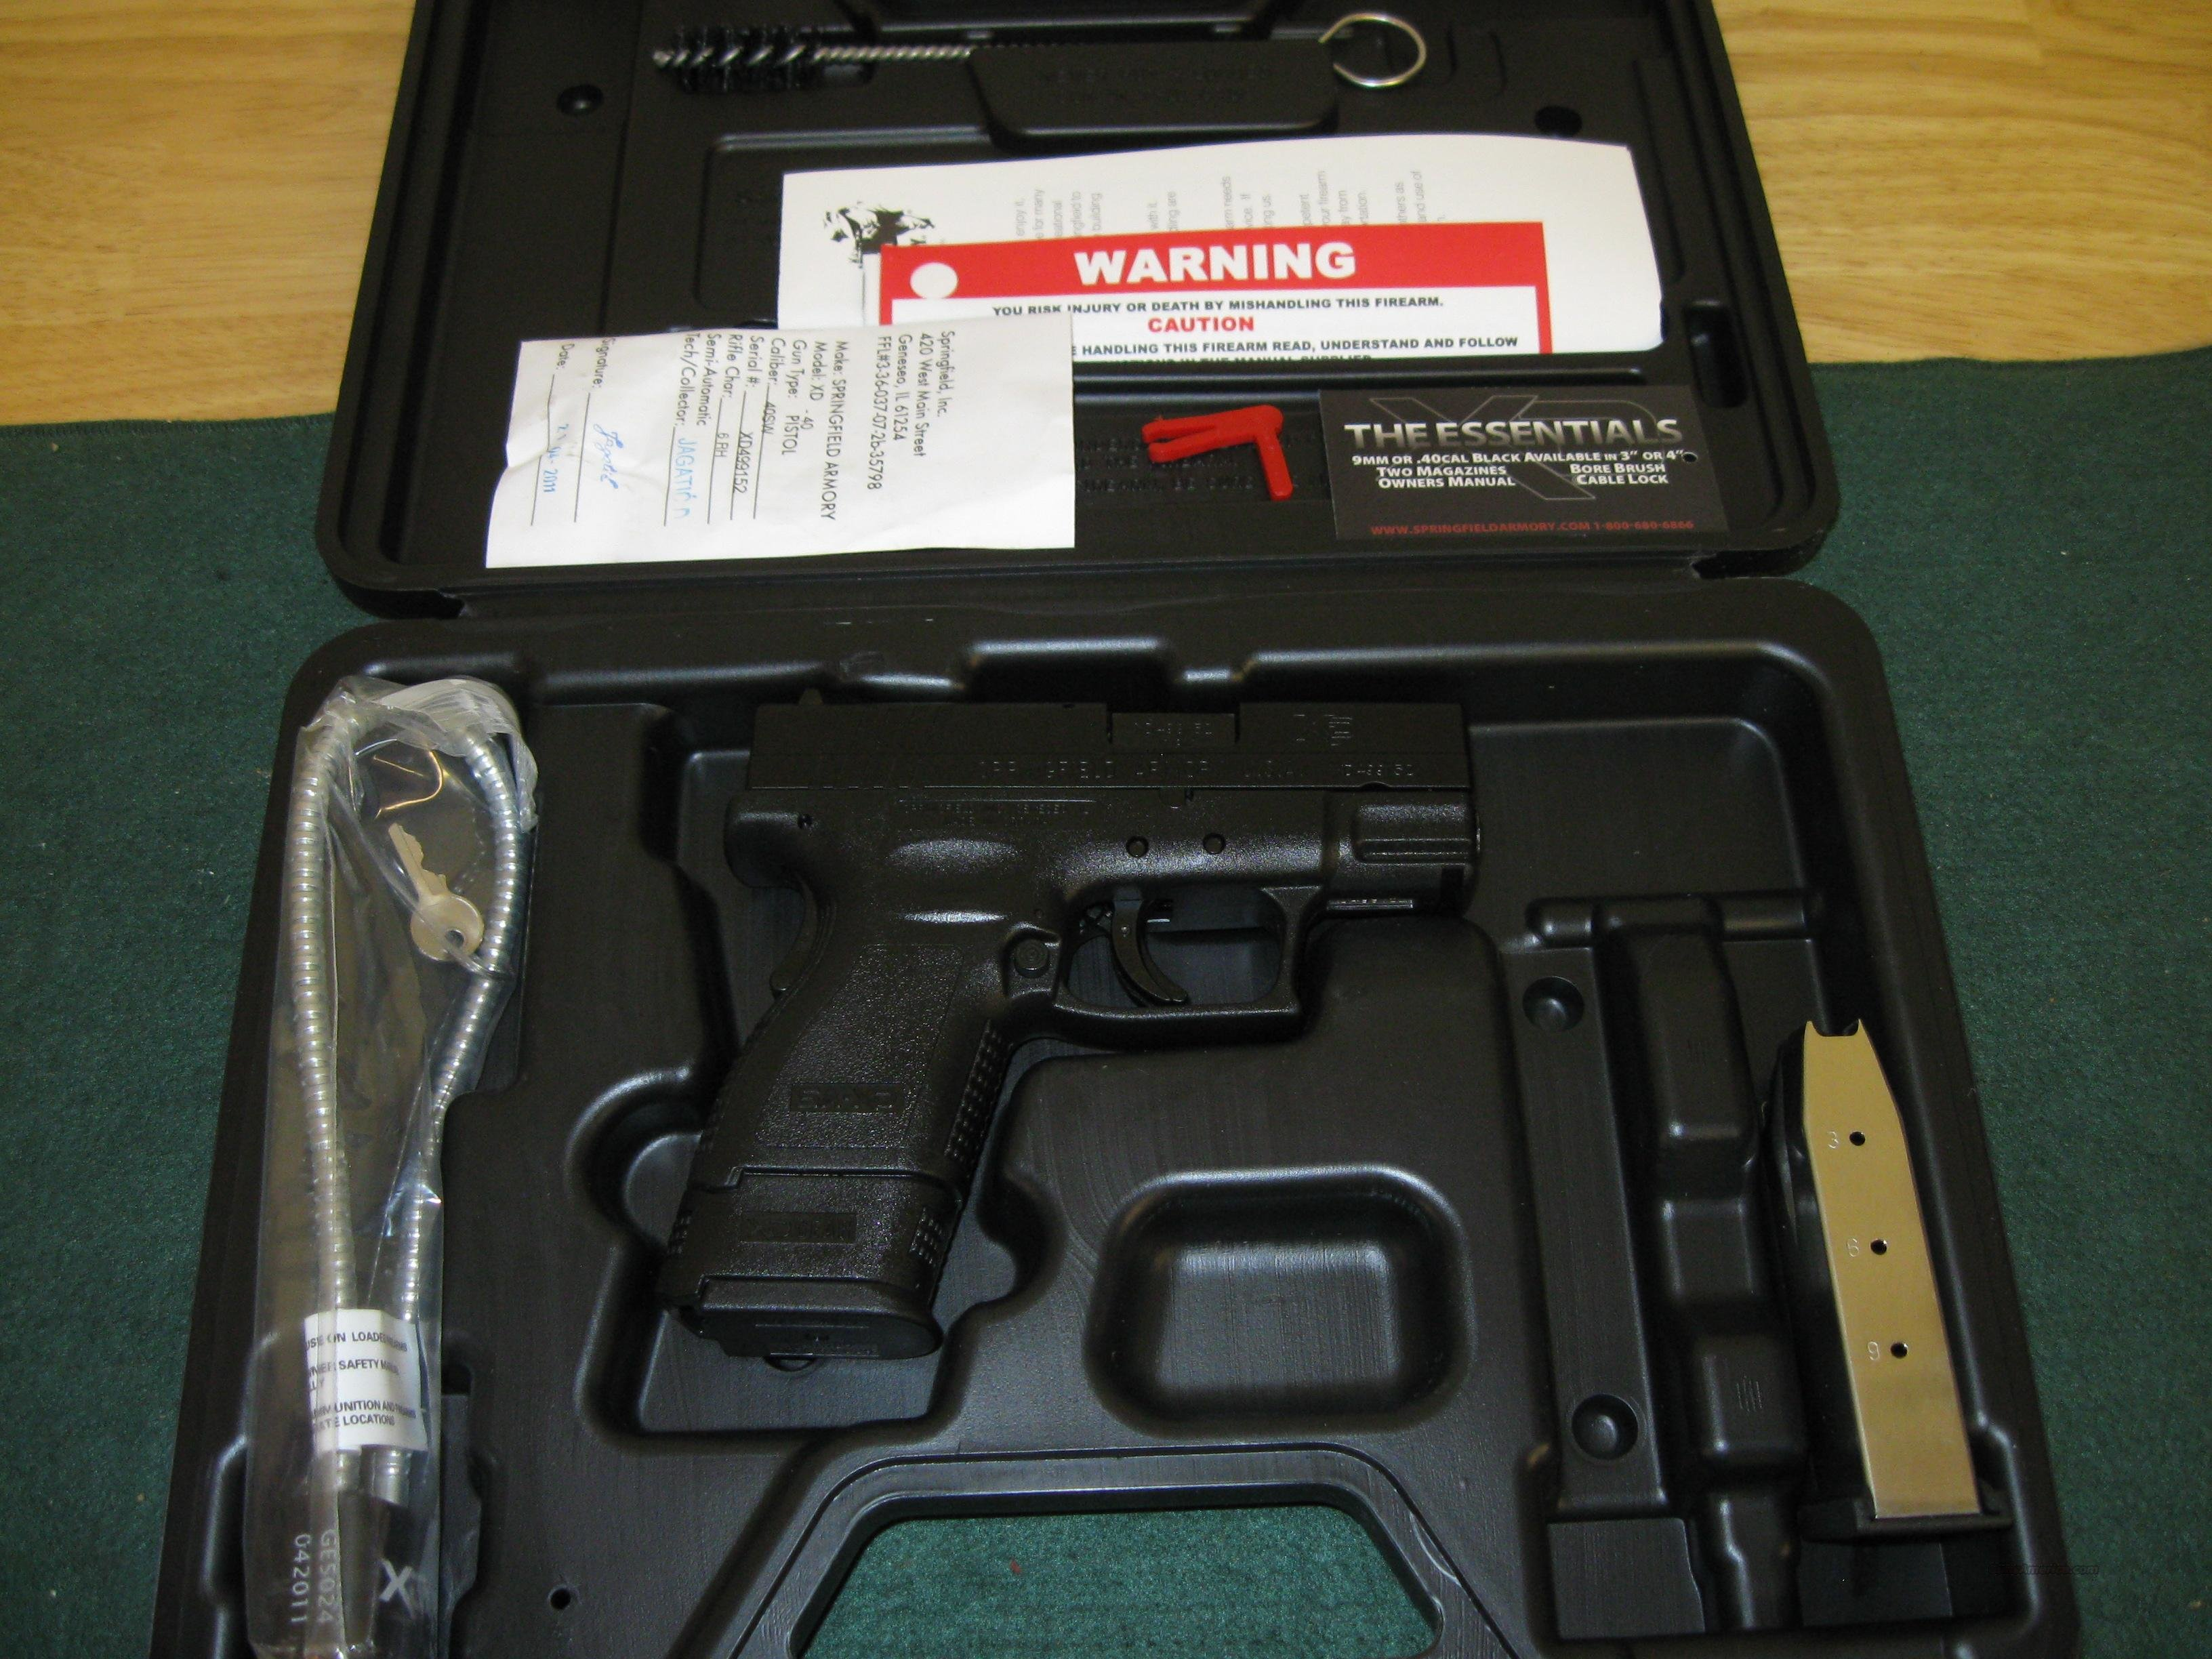 Springfield XD Essential Package XD9802HC, 40 S&W, 3 in, Polymer Grip, Matte Black Finish, 3-Dot Sights, 12 Rd (Grip Extension)  Guns > Pistols > Springfield Armory Pistols > XD (eXtreme Duty)